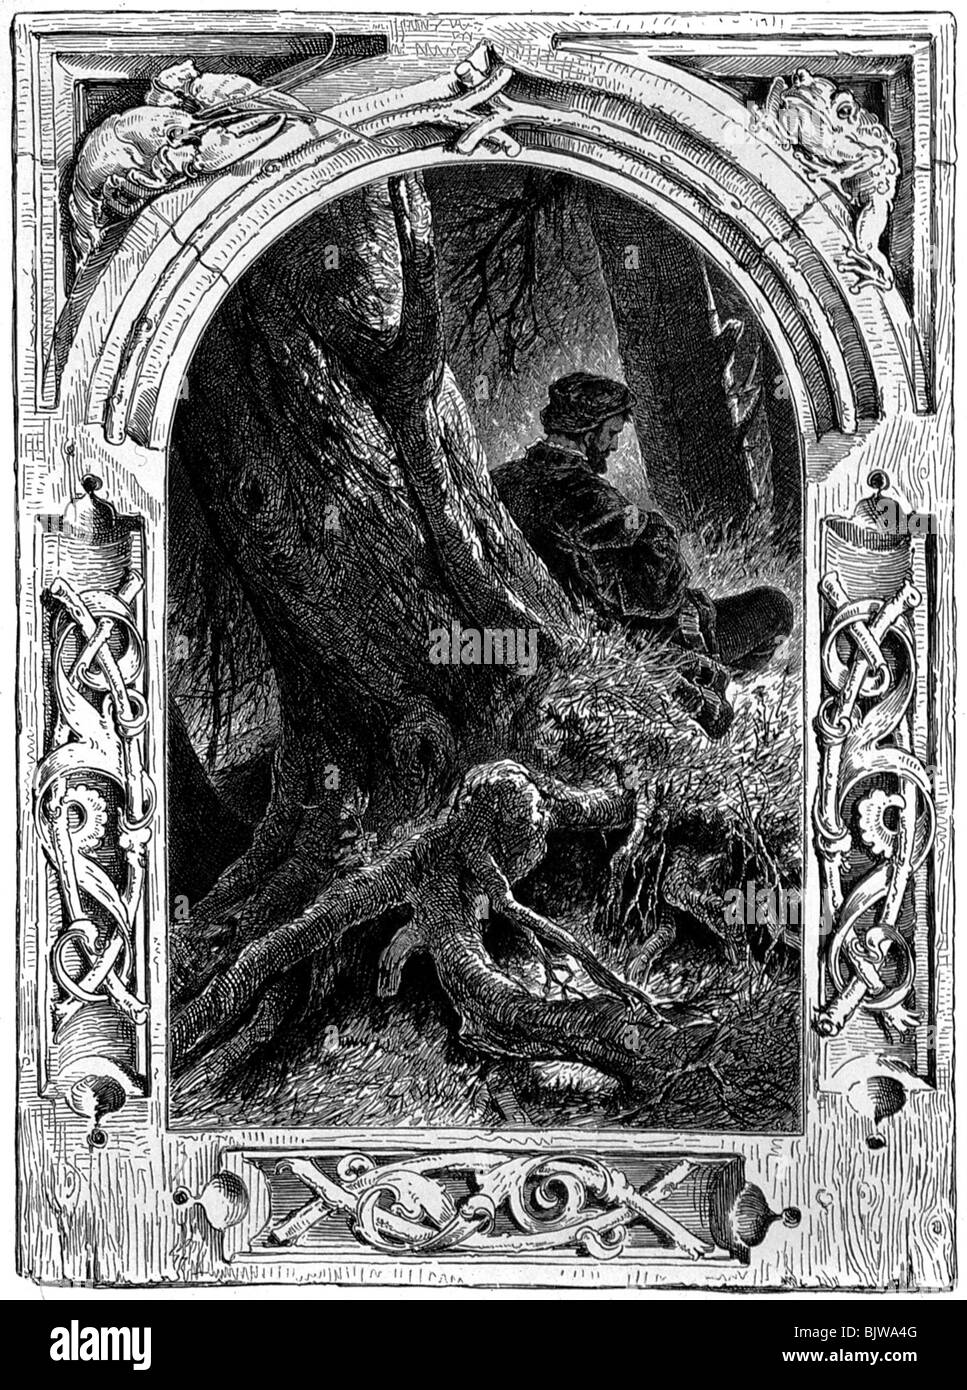 literature, 'Faust I', 21th scene 'Walpurgisnight', scene with Faust, woodcut by W. Hecht, circa - Stock Image